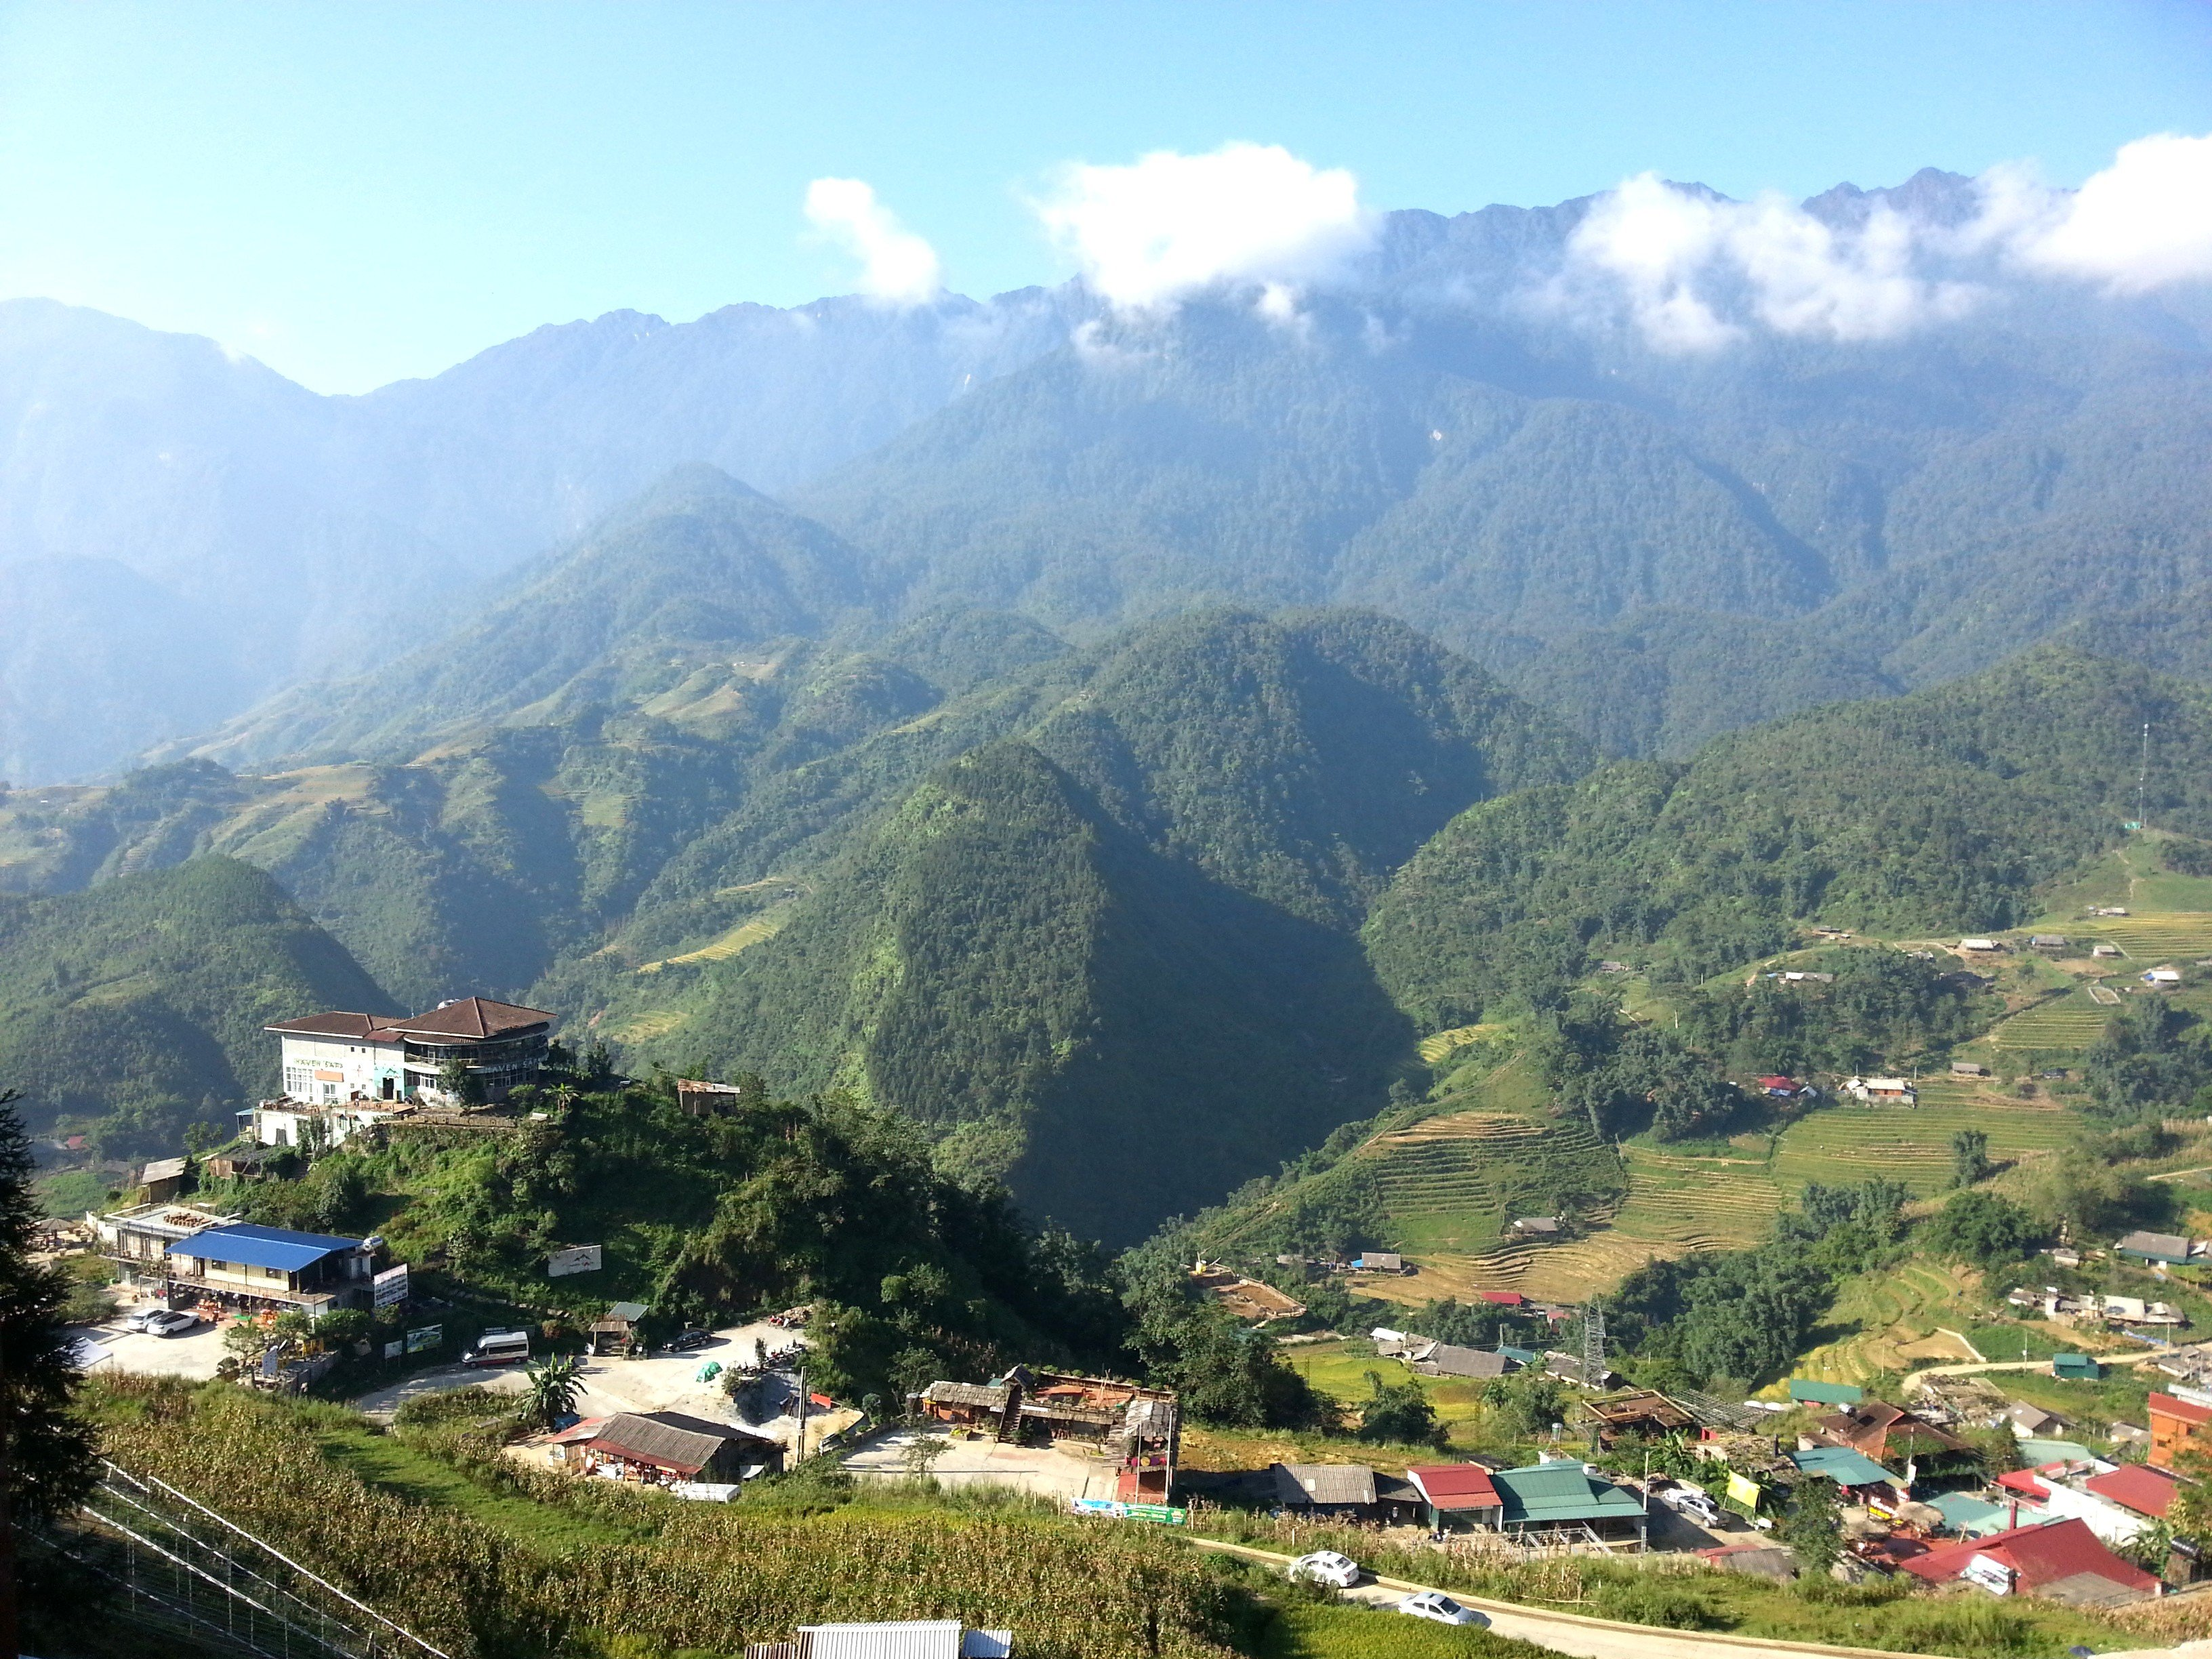 Sapa is 1 hour away from Lao Cai Railway Station